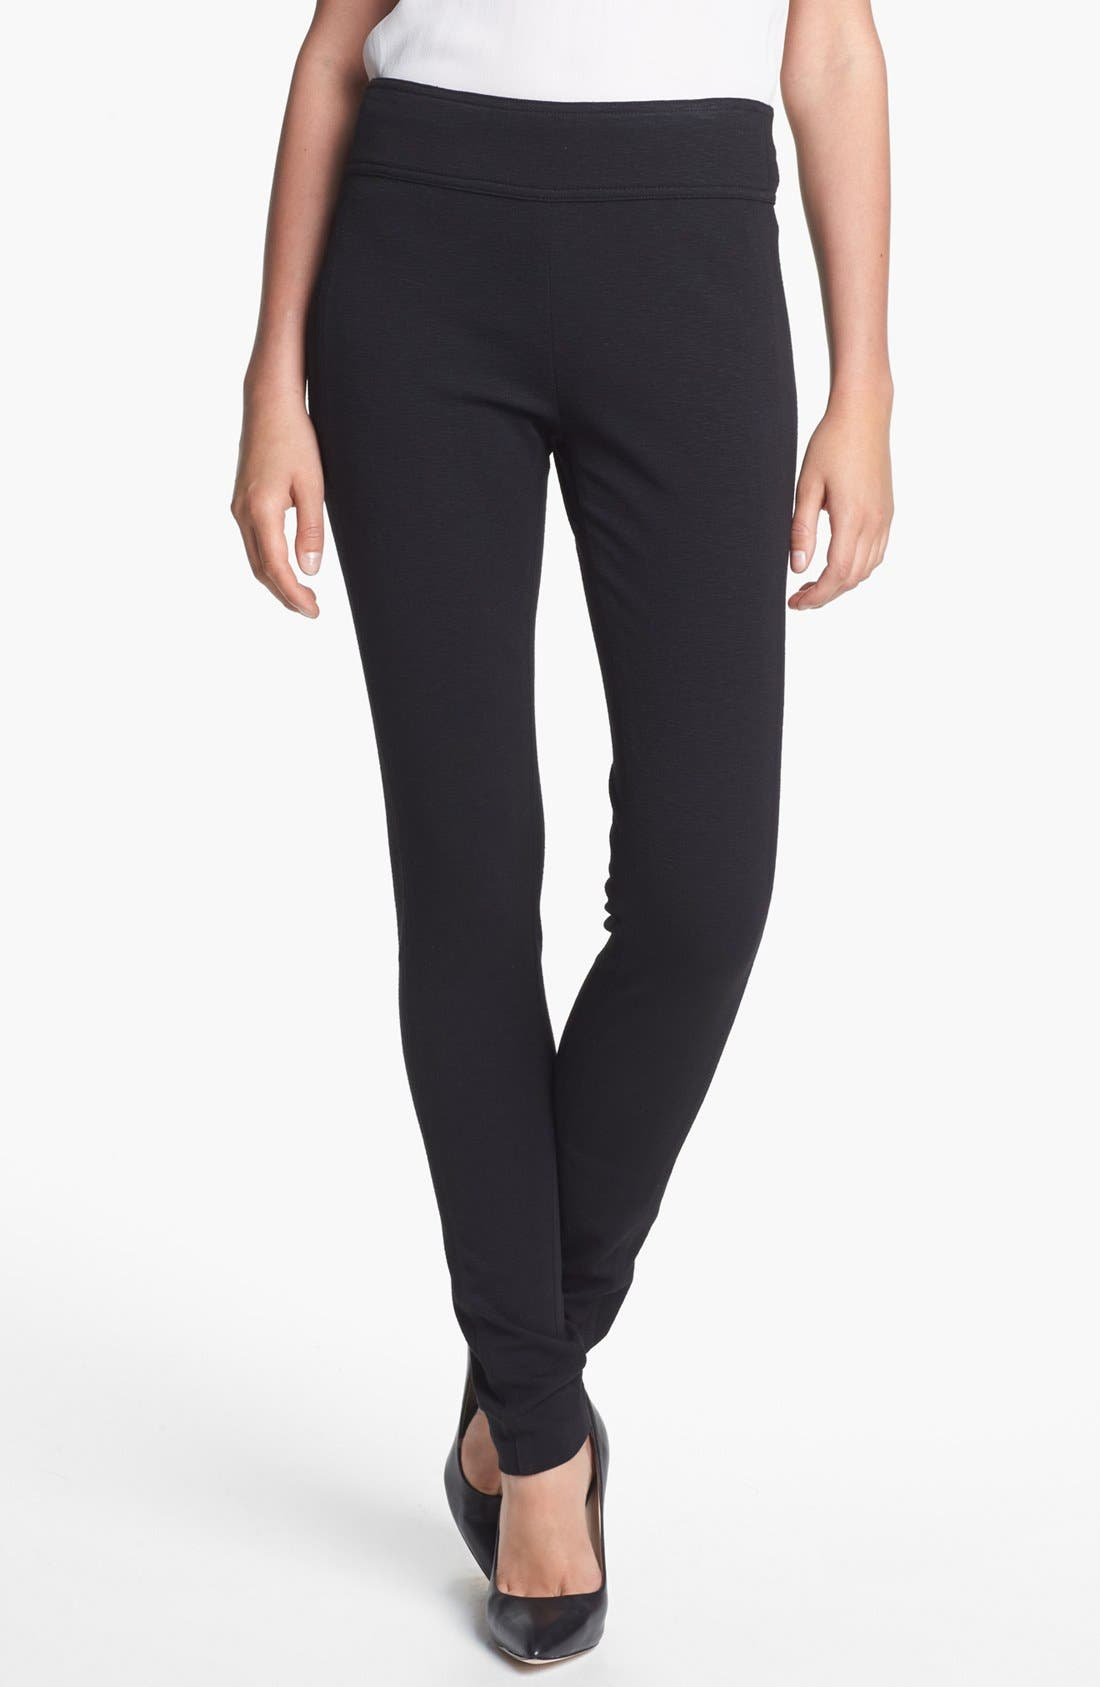 Alternate Image 1 Selected - Diane von Furstenberg 'Lendra' Seamed Knit Leggings